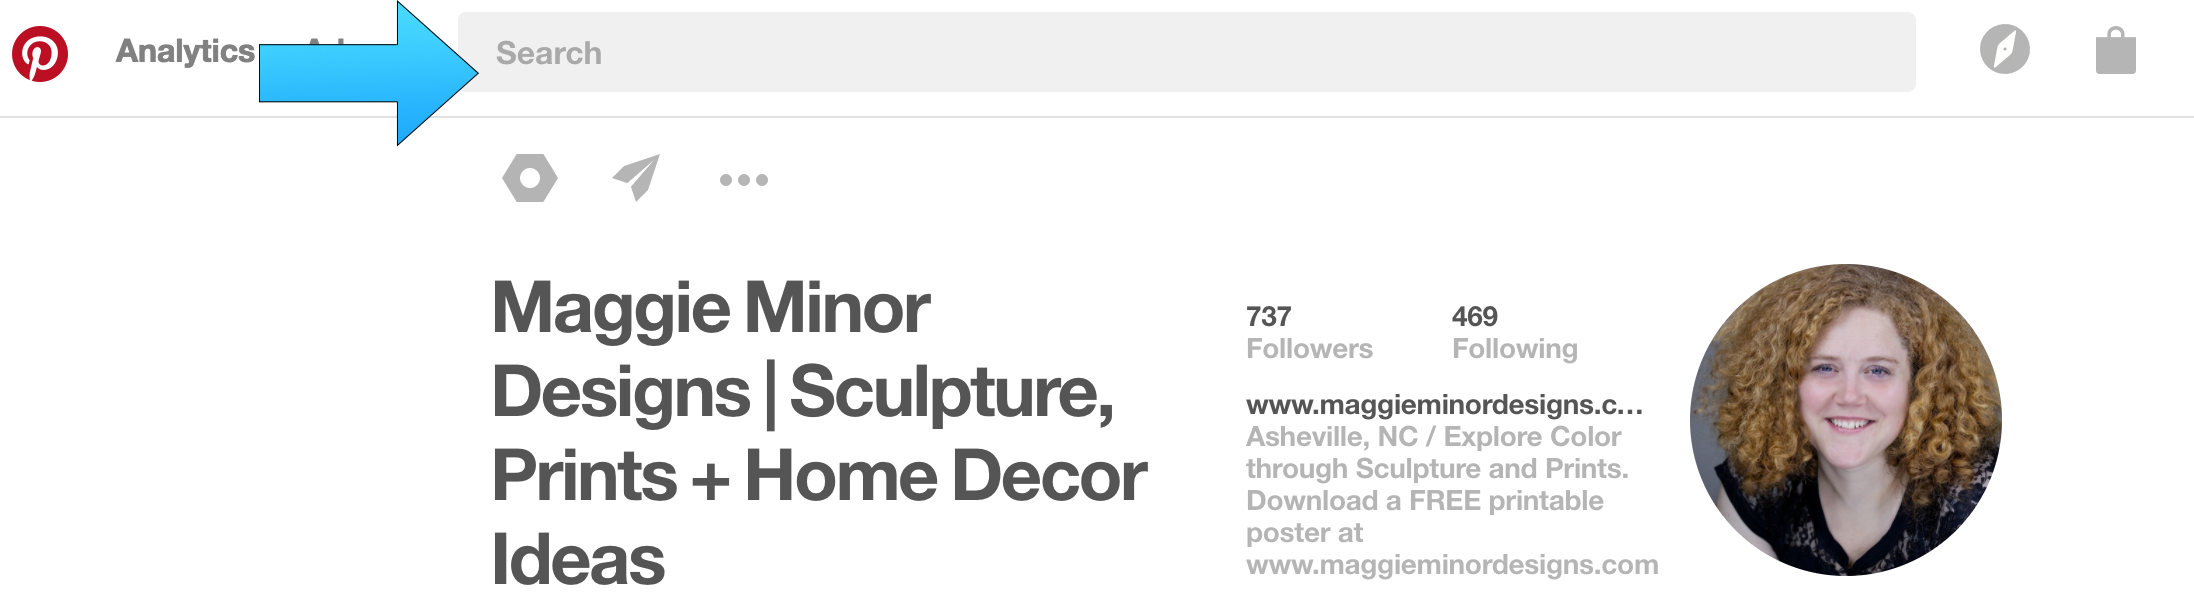 Screen Shot Maggie Minor Designs Pinterest.png